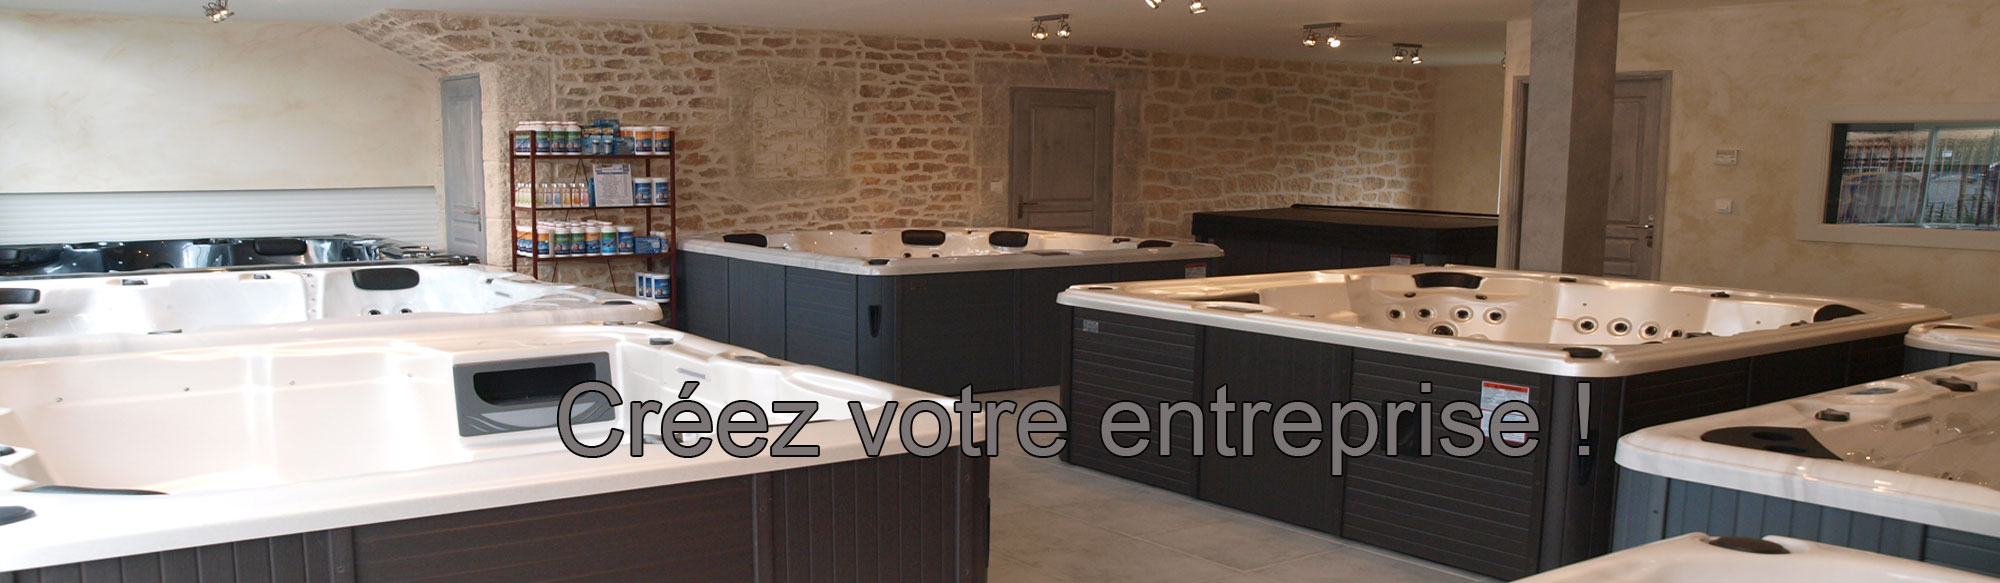 banieres-site-franchise-3